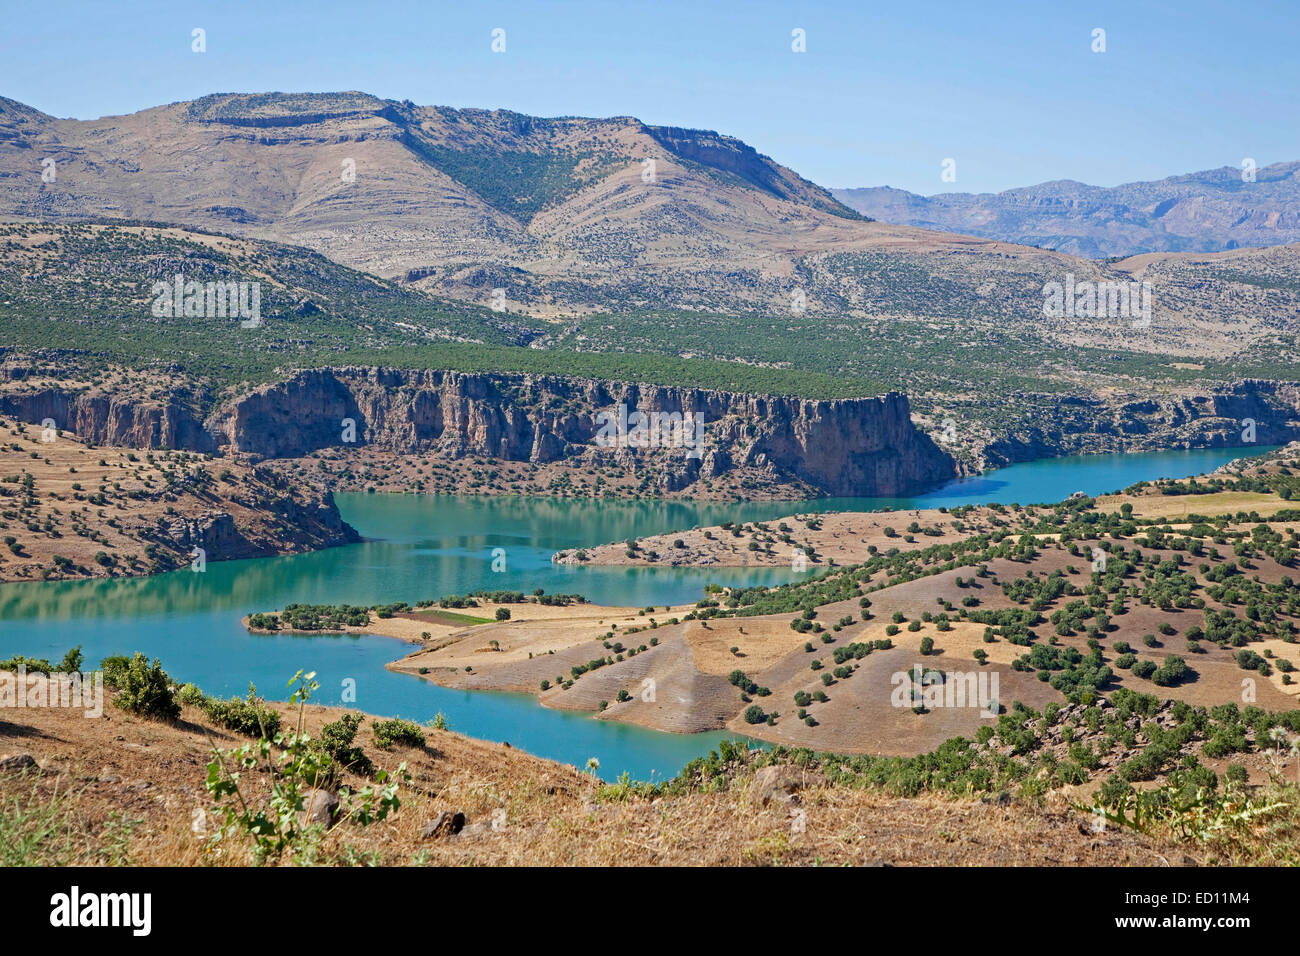 Euphrates, longest river of Western Asia in Eastern Turkey - Stock Image